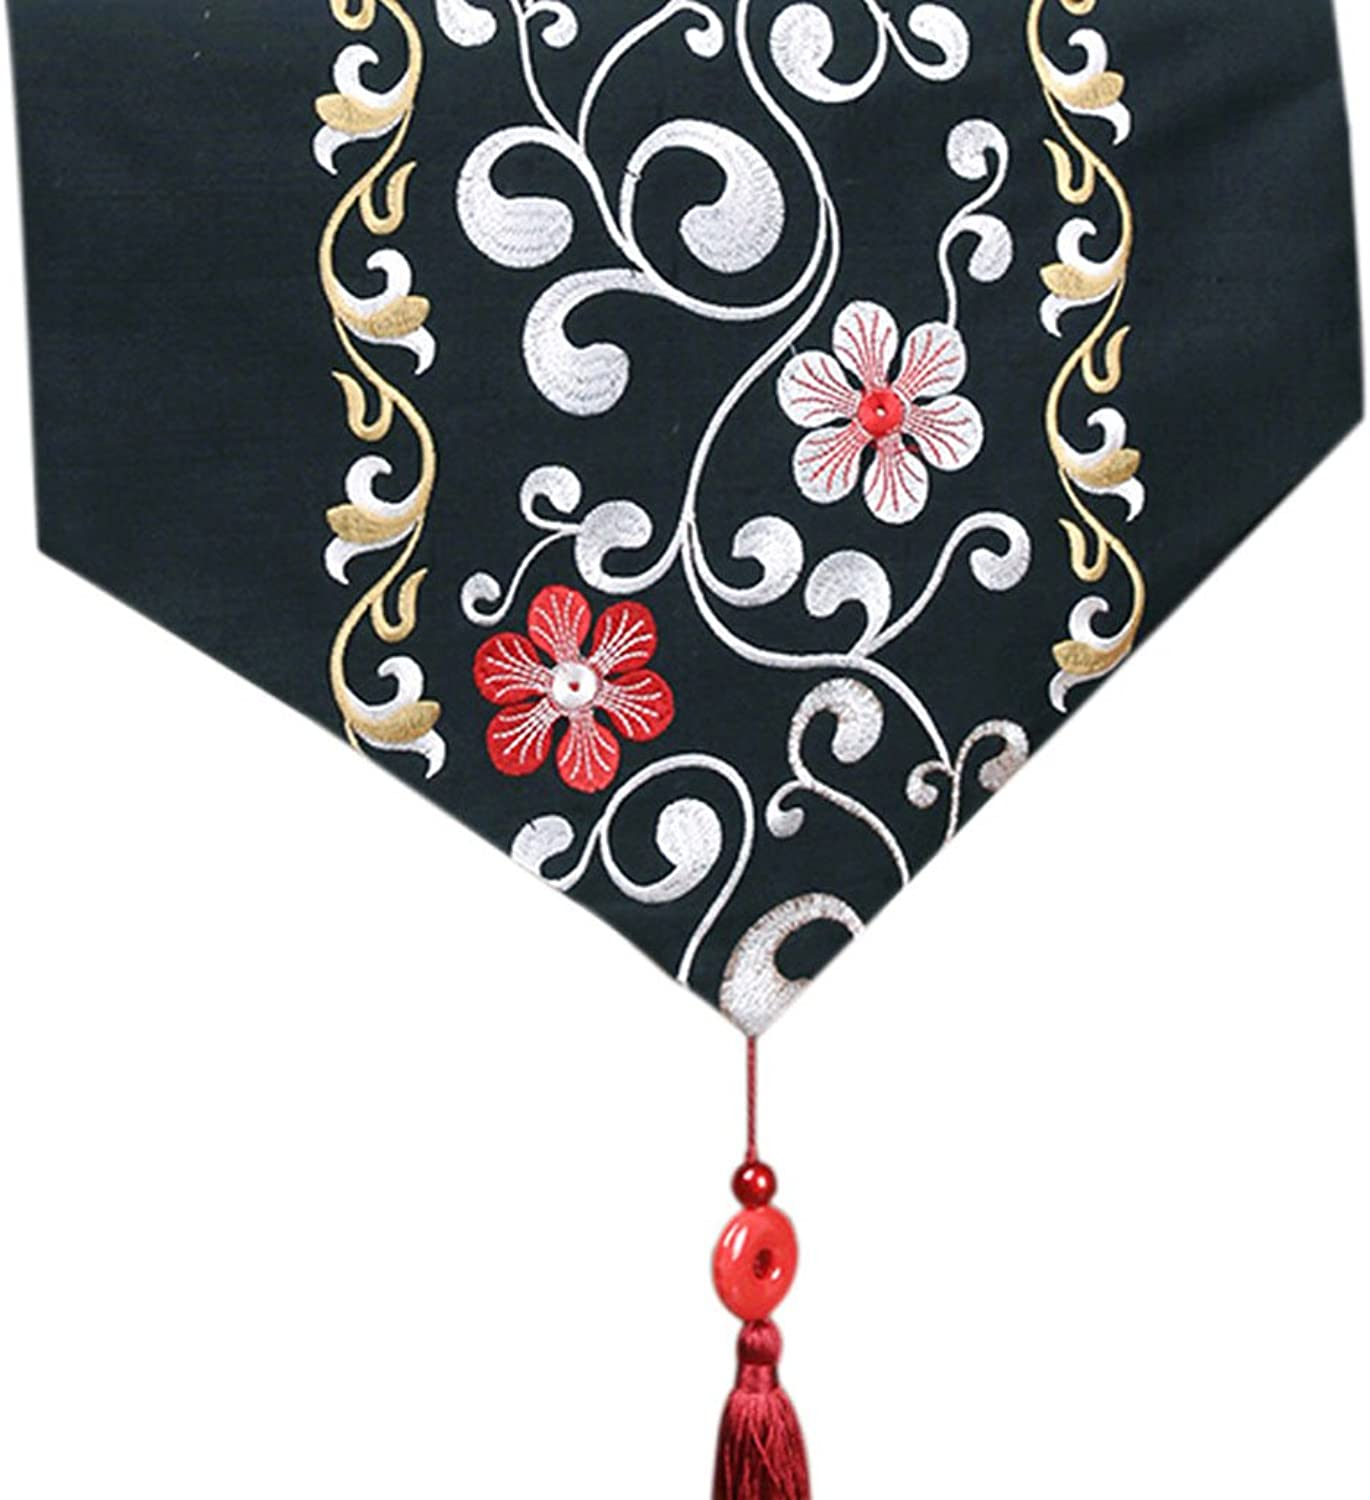 Entrega directa y rápida de fábrica WYDM Table Runner negro Spinning Embroidery Home Home Home Tea Table Flag Mantel Marry Simple Estilo Europeo (Tamaño   34  240cm)  la calidad primero los consumidores primero